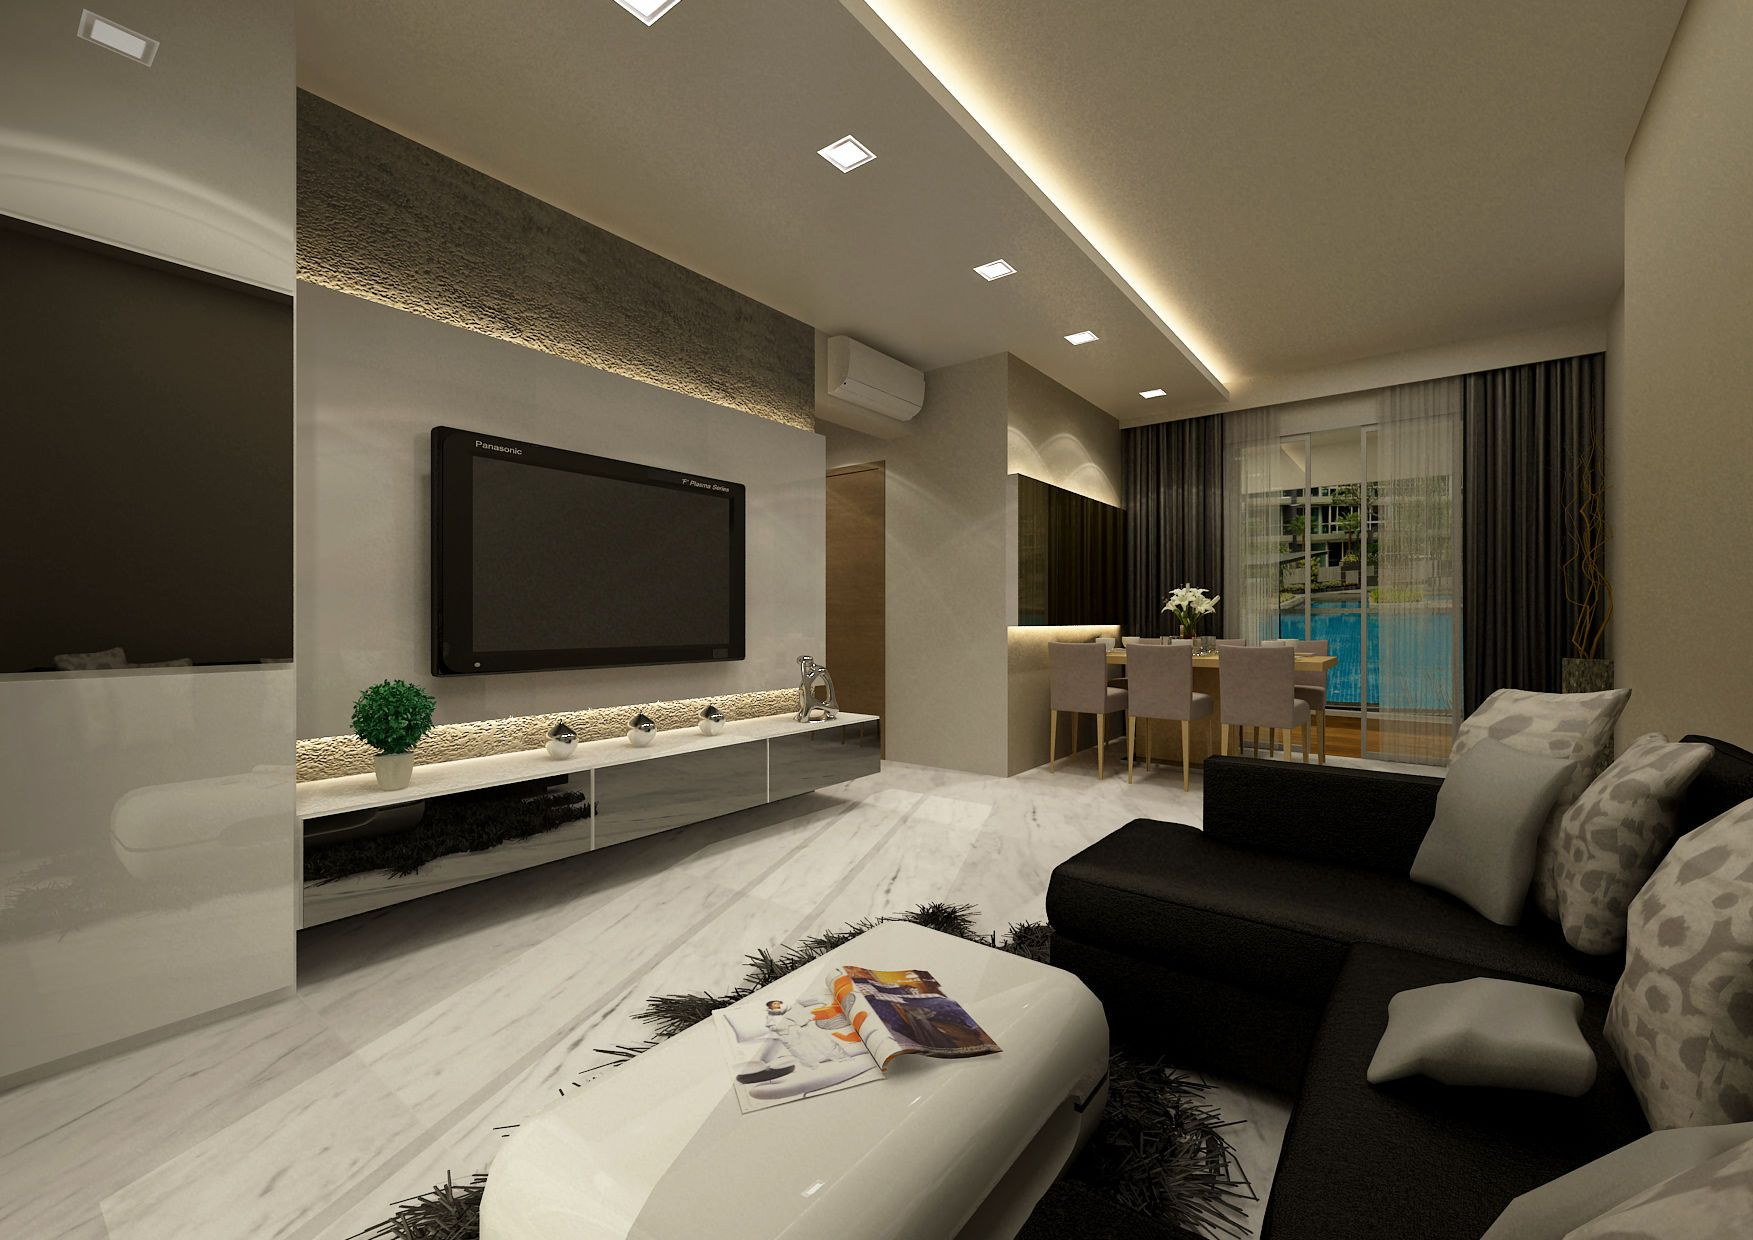 Merveilleux Graphic Executive Condominium Interior Design